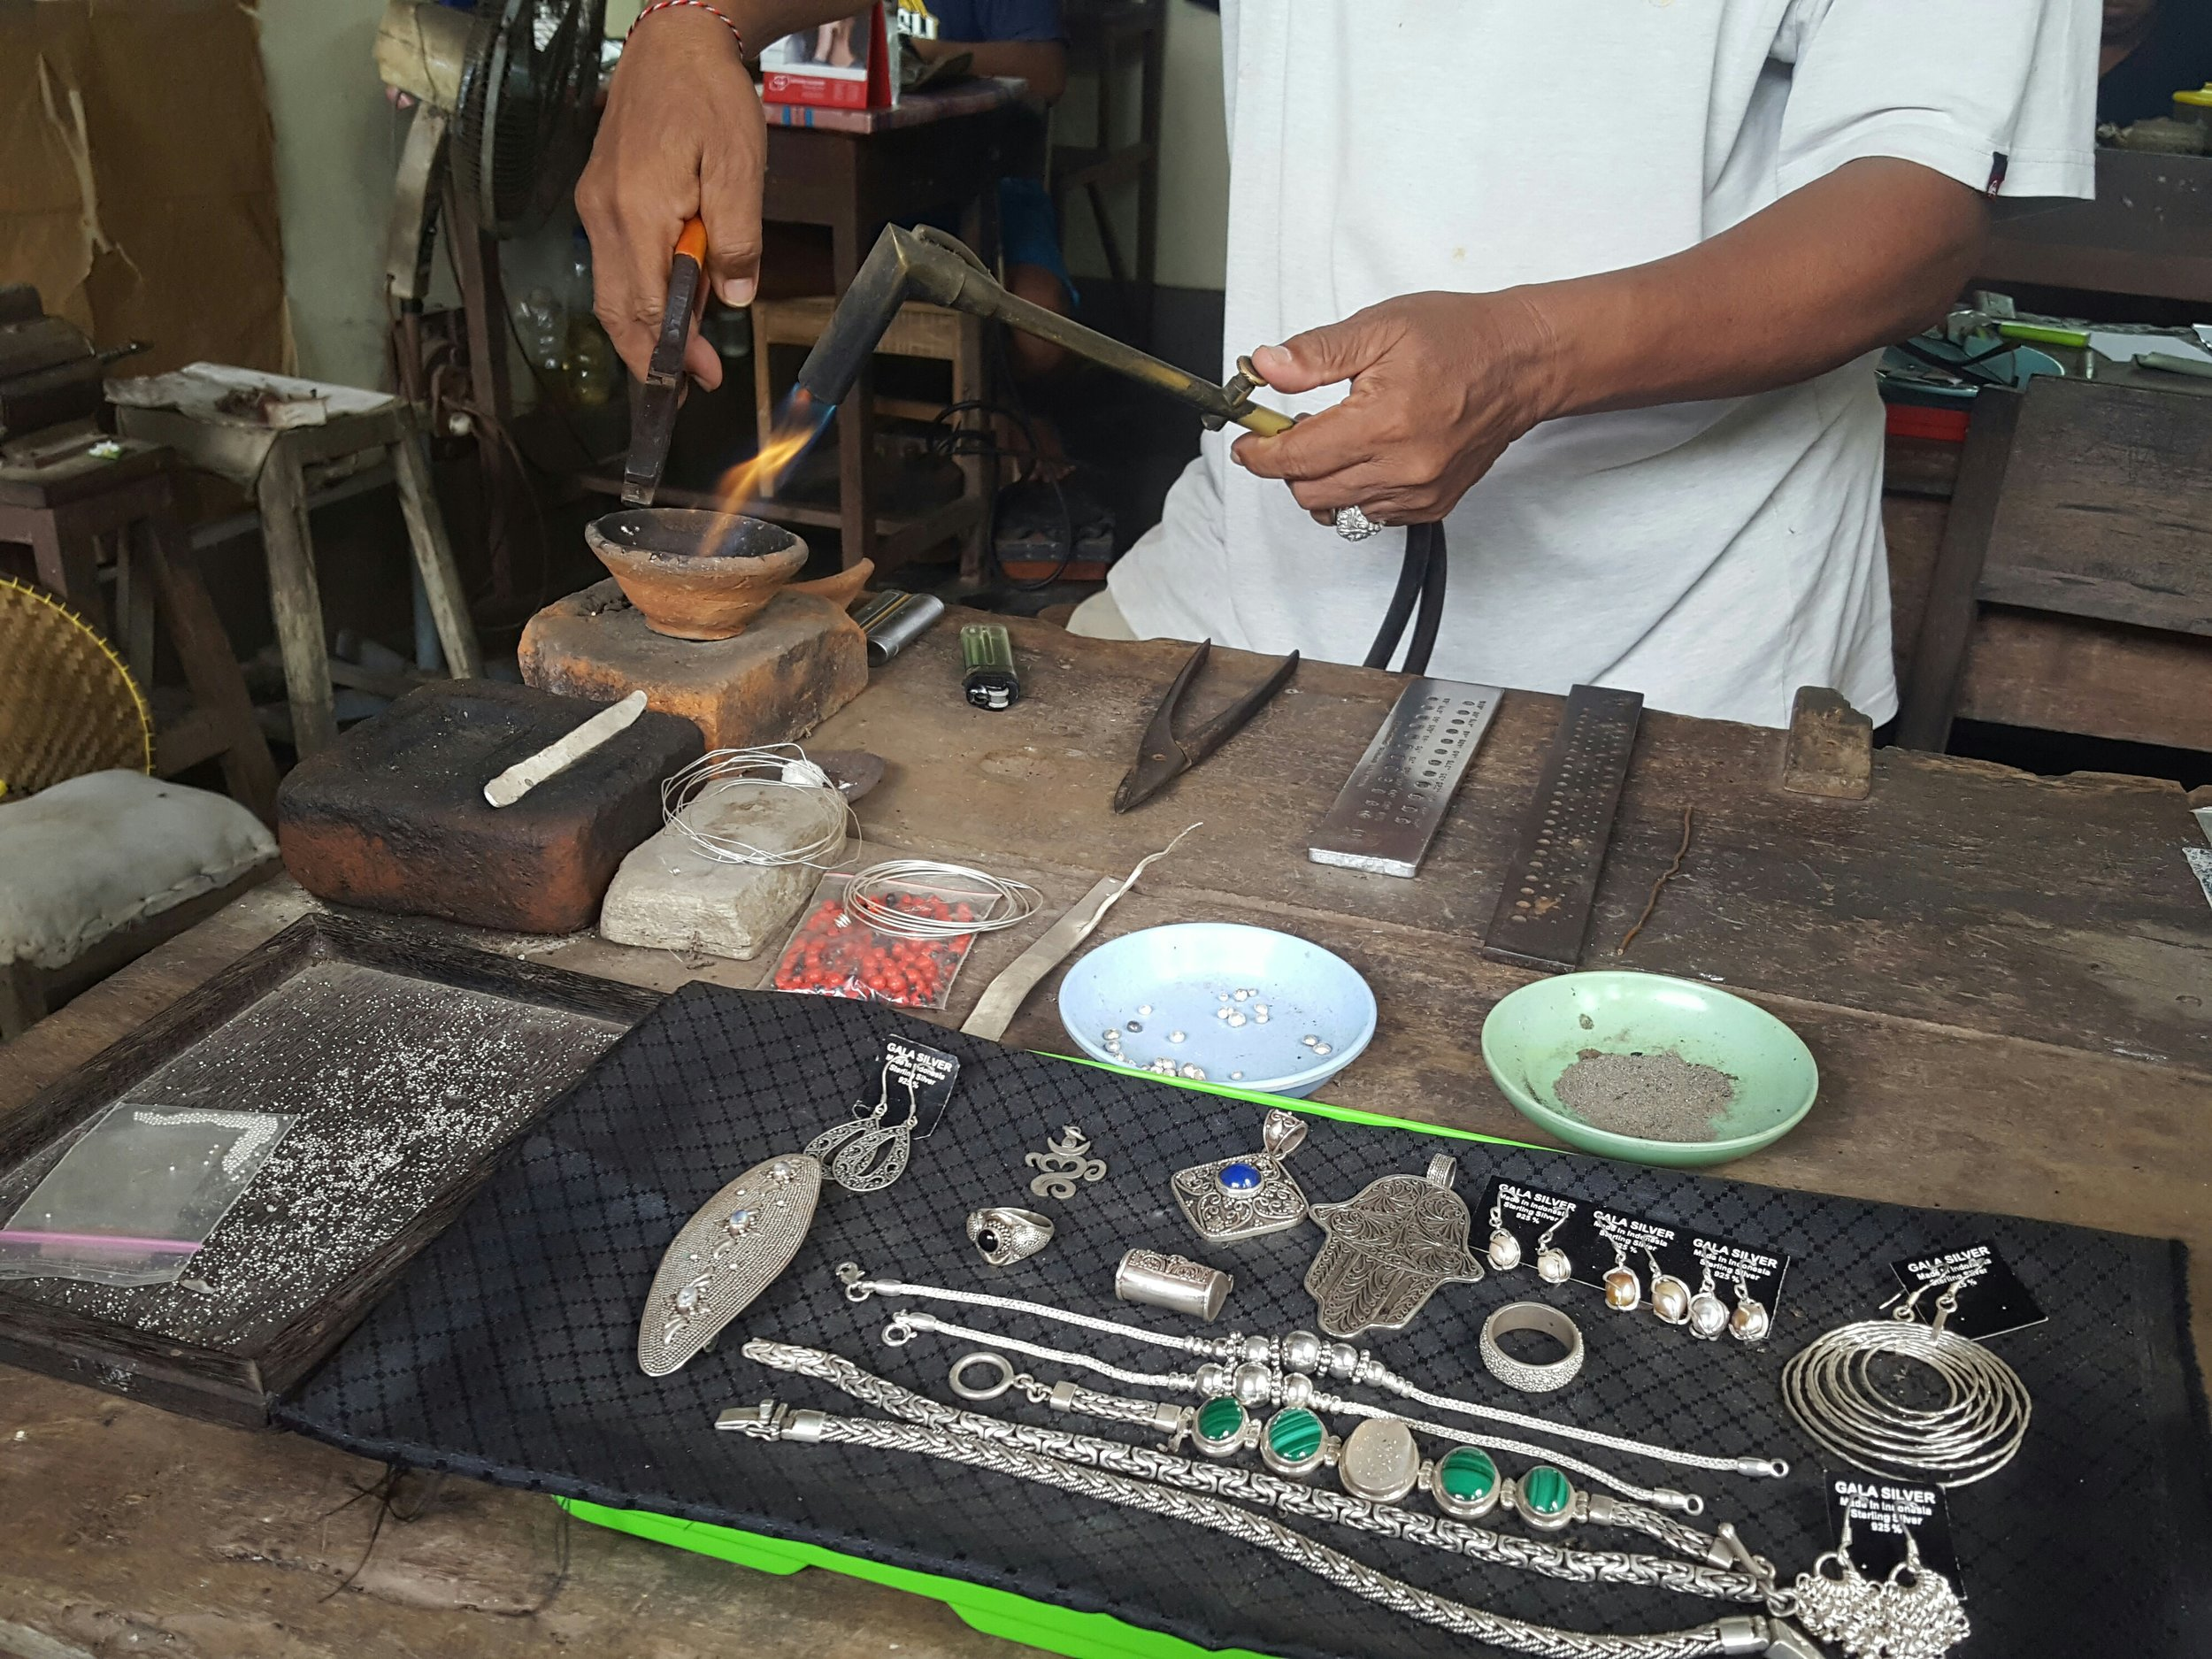 A silversmith working his magic